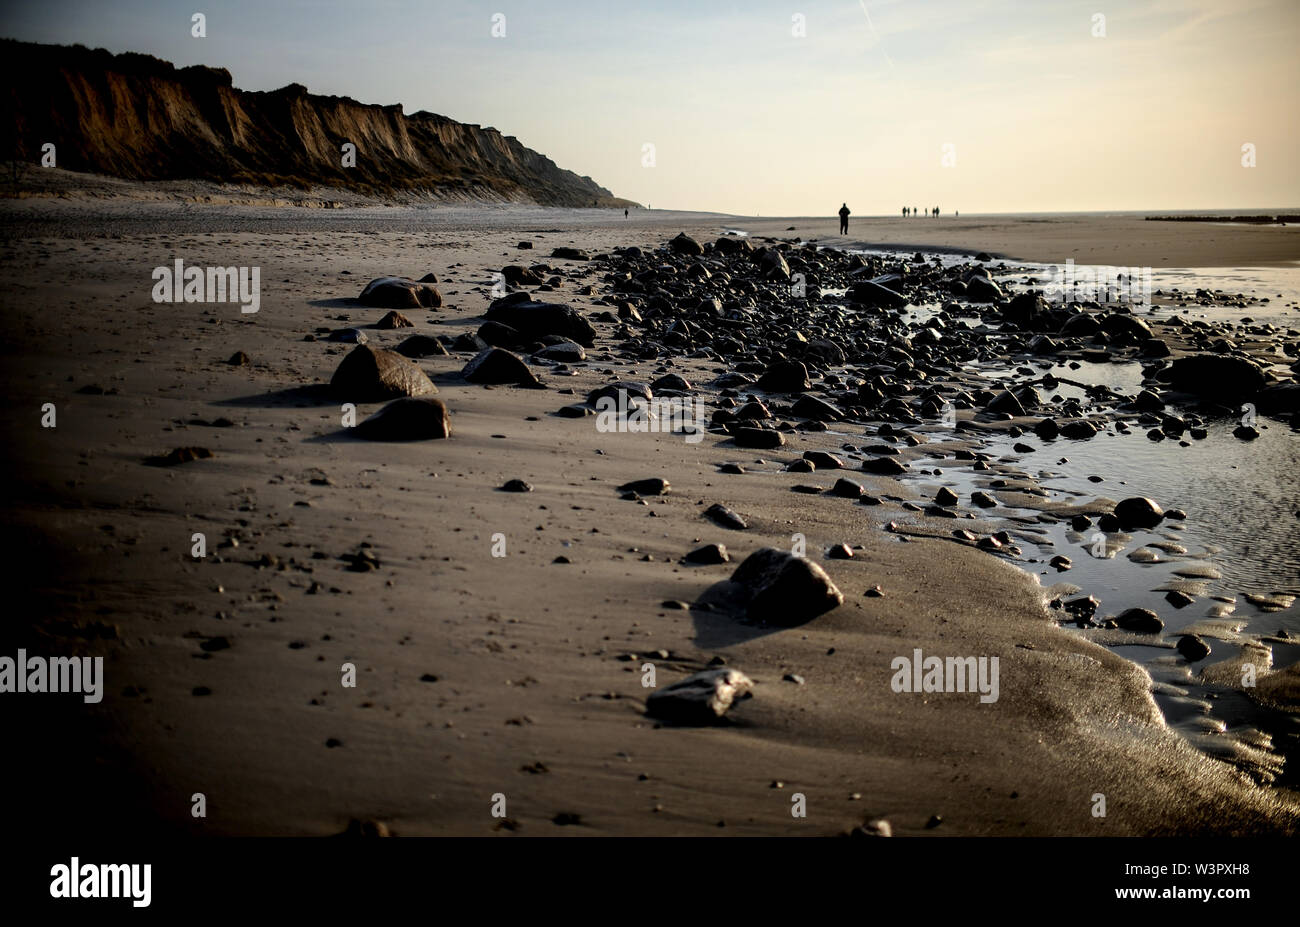 Sylt, Germany. 18th Feb, 2019. Landscape on Sylt. Sylt is the largest North Frisian island in Germany. Credit: Britta Pedersen/dpa-Zentralbild/ZB/dpa/Alamy Live News - Stock Image